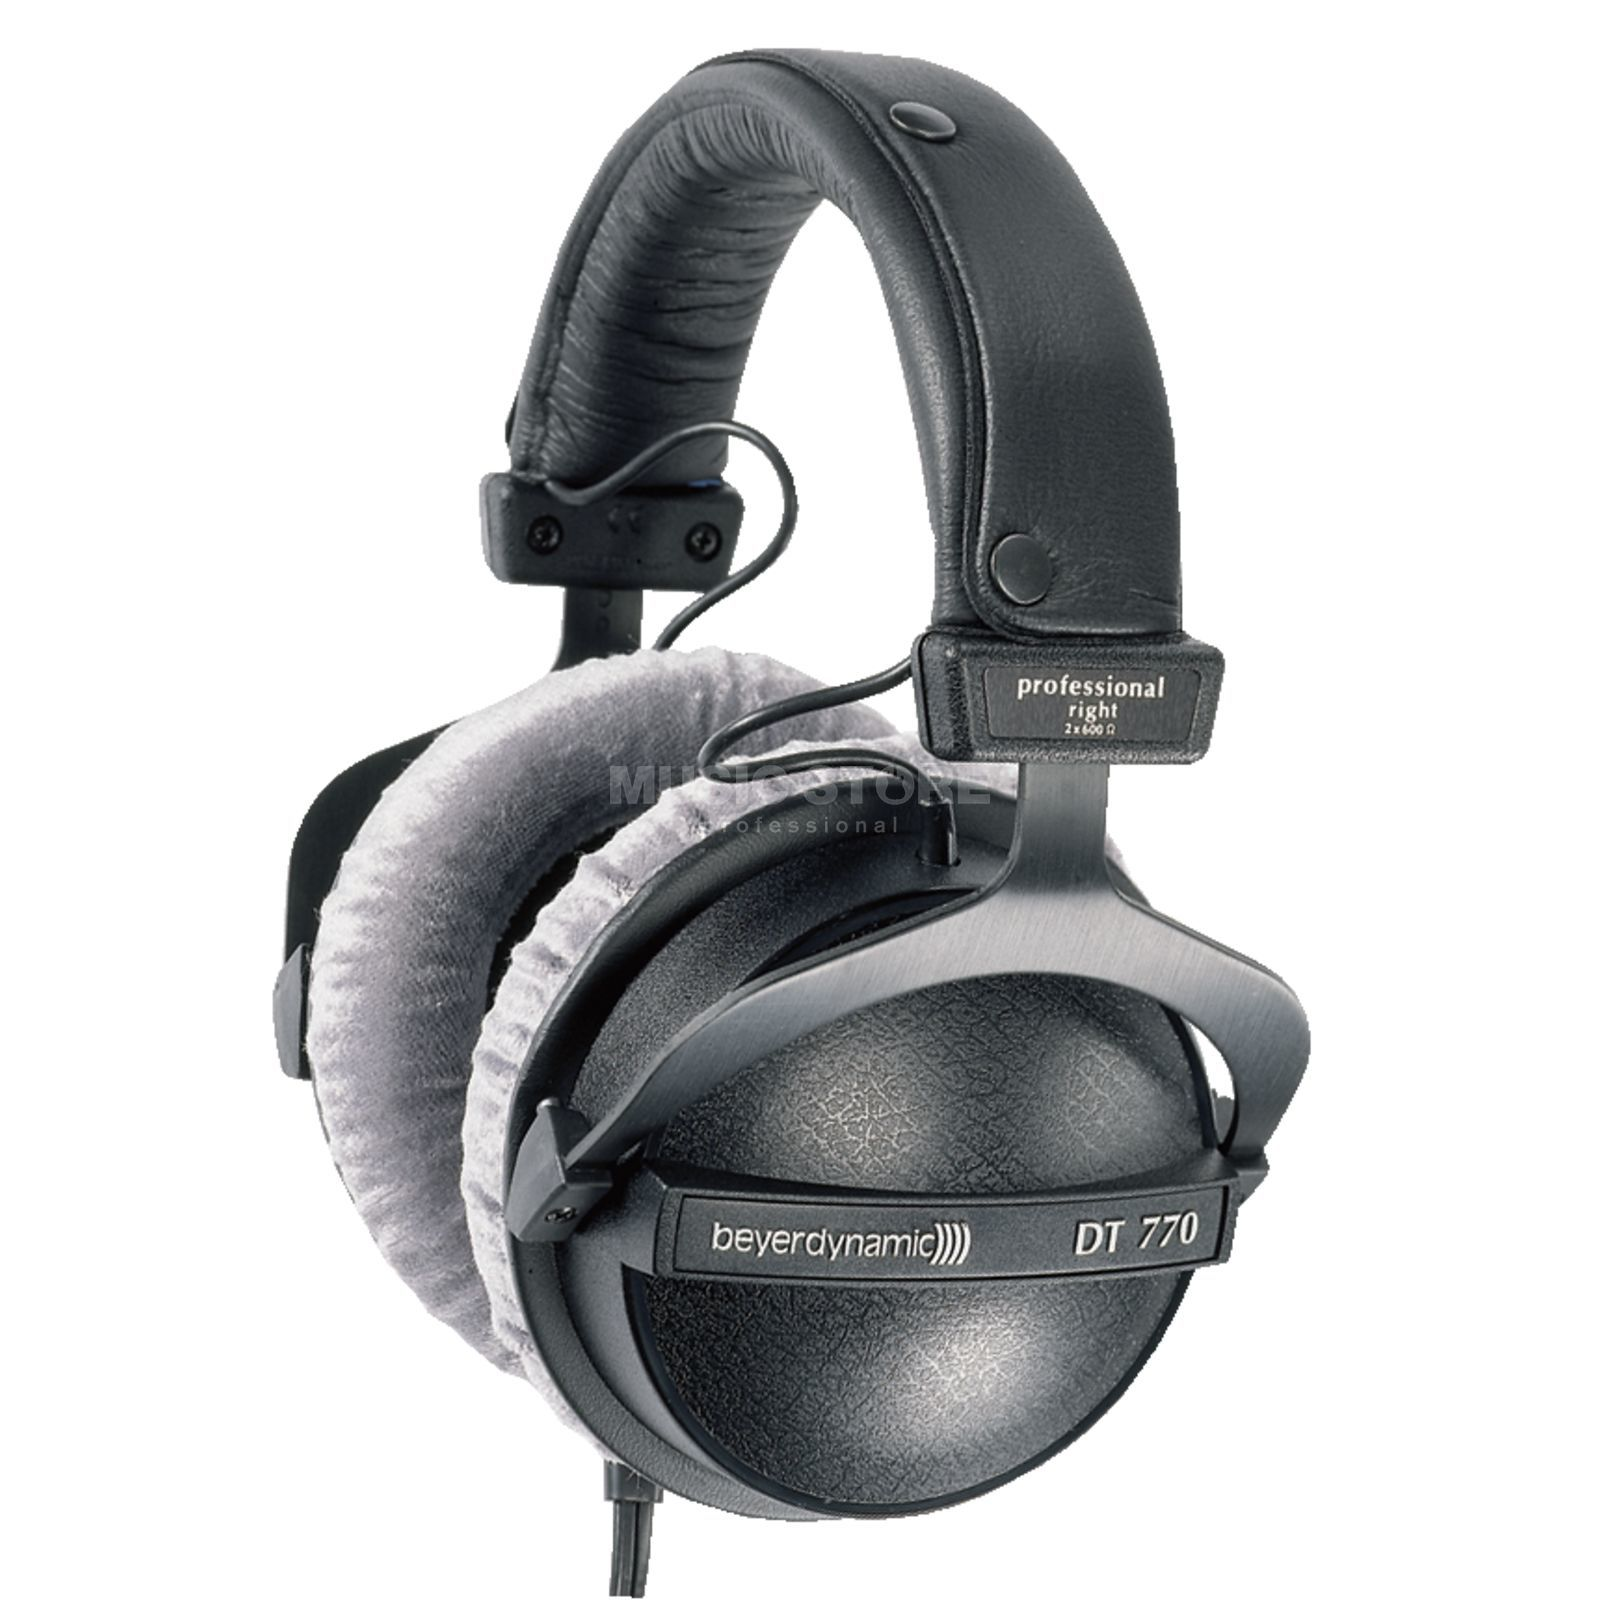 beyerdynamic dt 770 ltd 80 ohm closed studio headphones with limiter. Black Bedroom Furniture Sets. Home Design Ideas